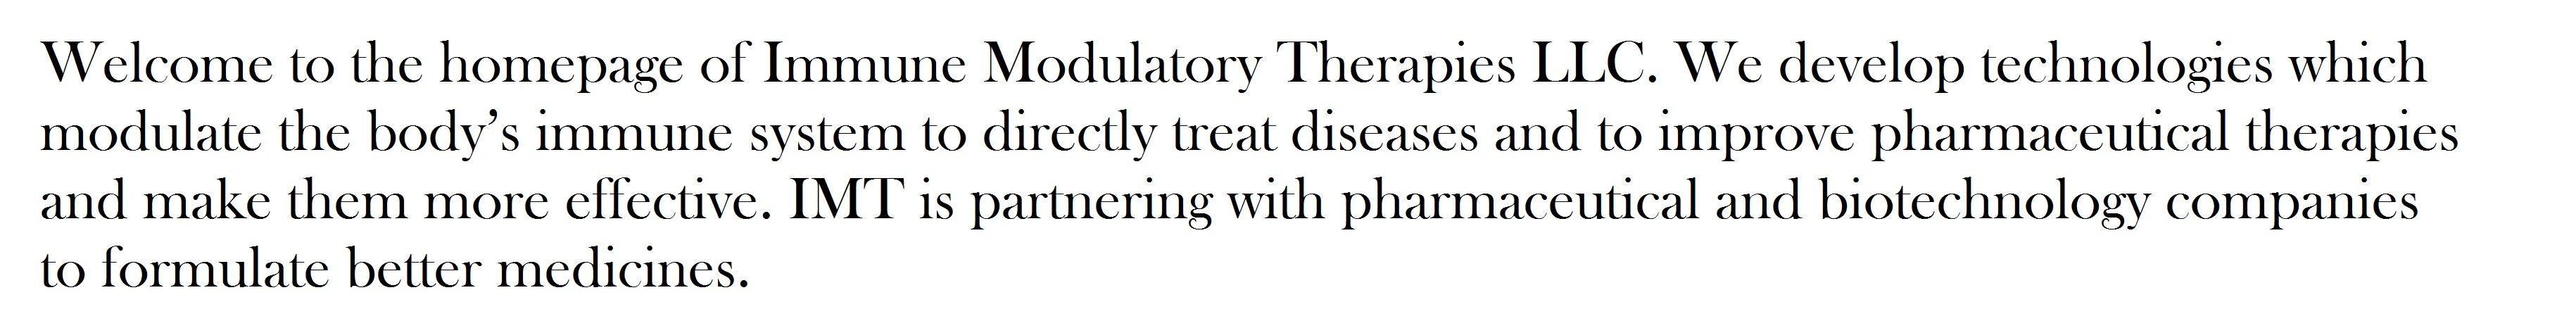 Immune Modulatory Therapies Mission